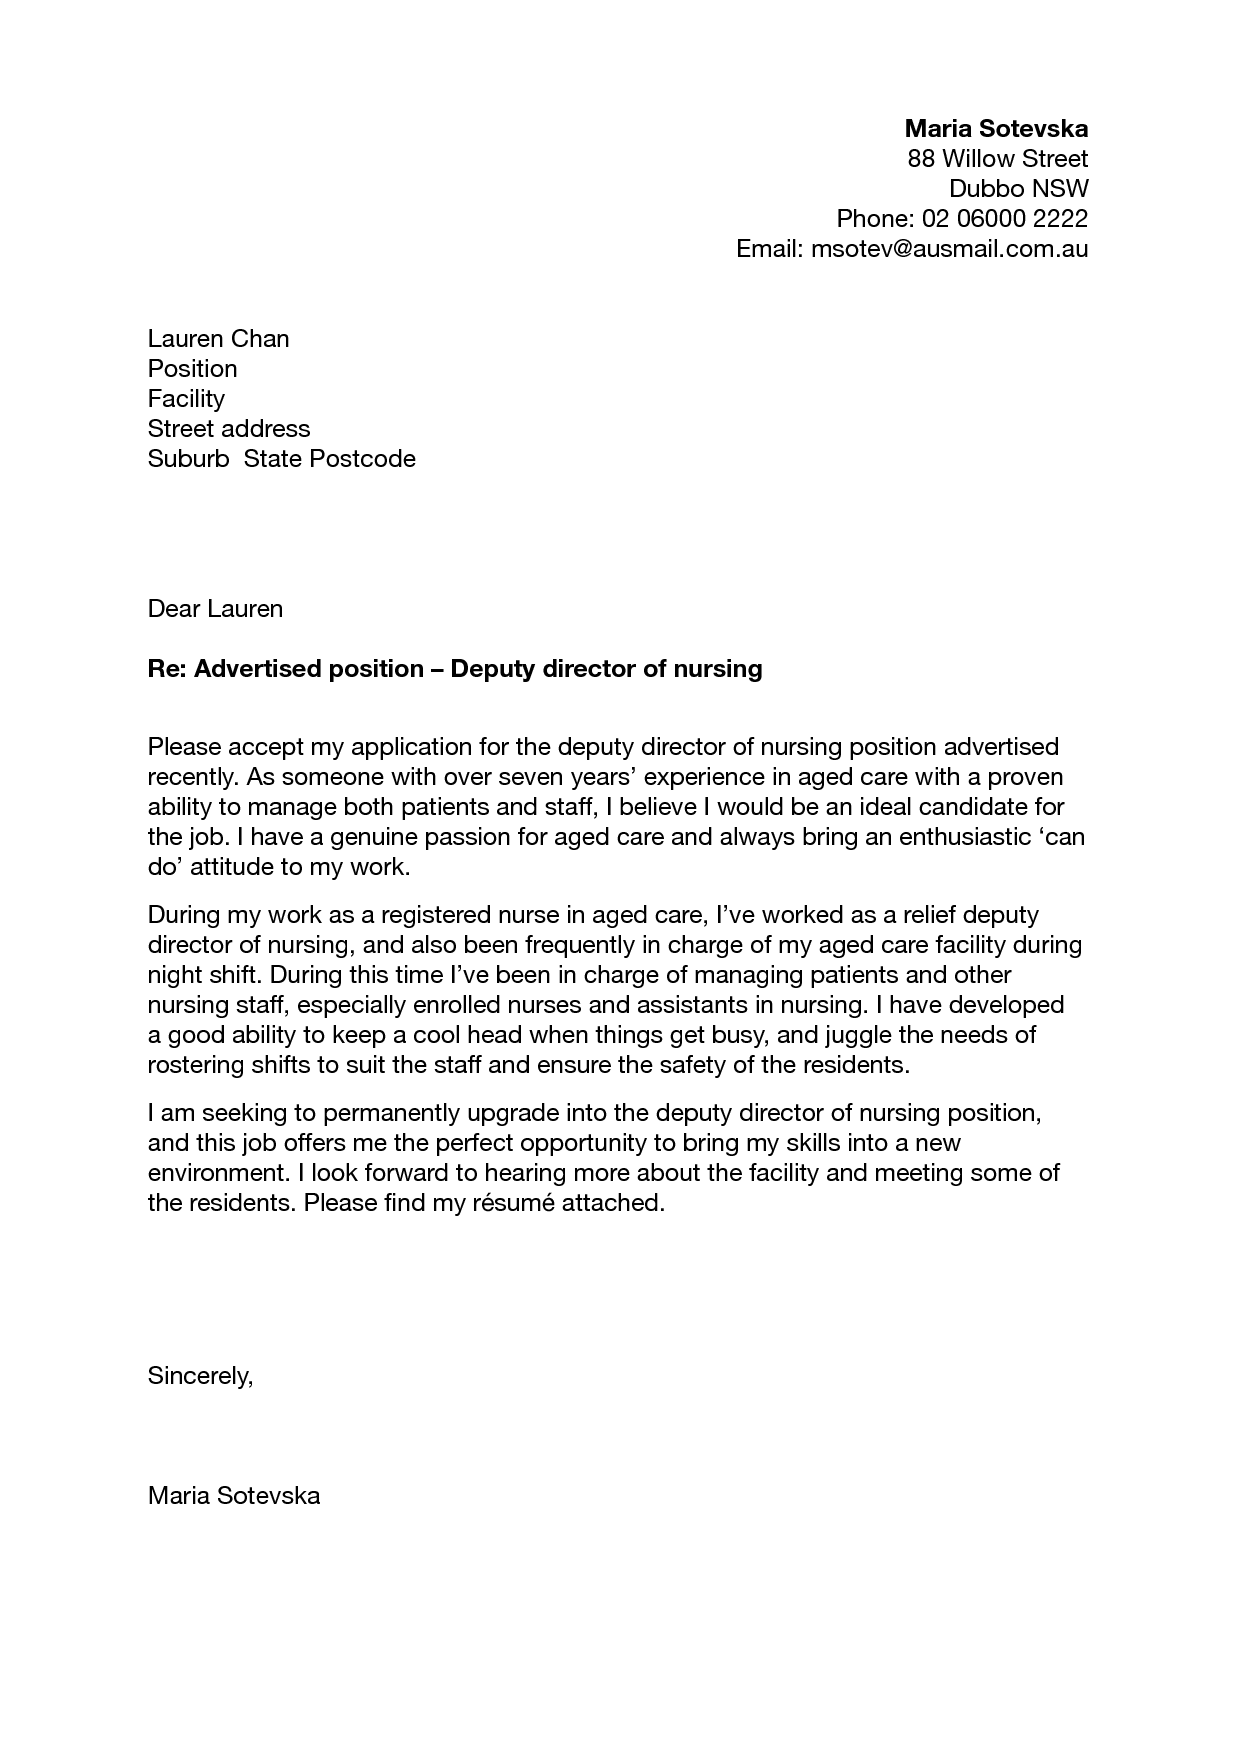 nursing school cover letter - Resume Cover Letter Nursing